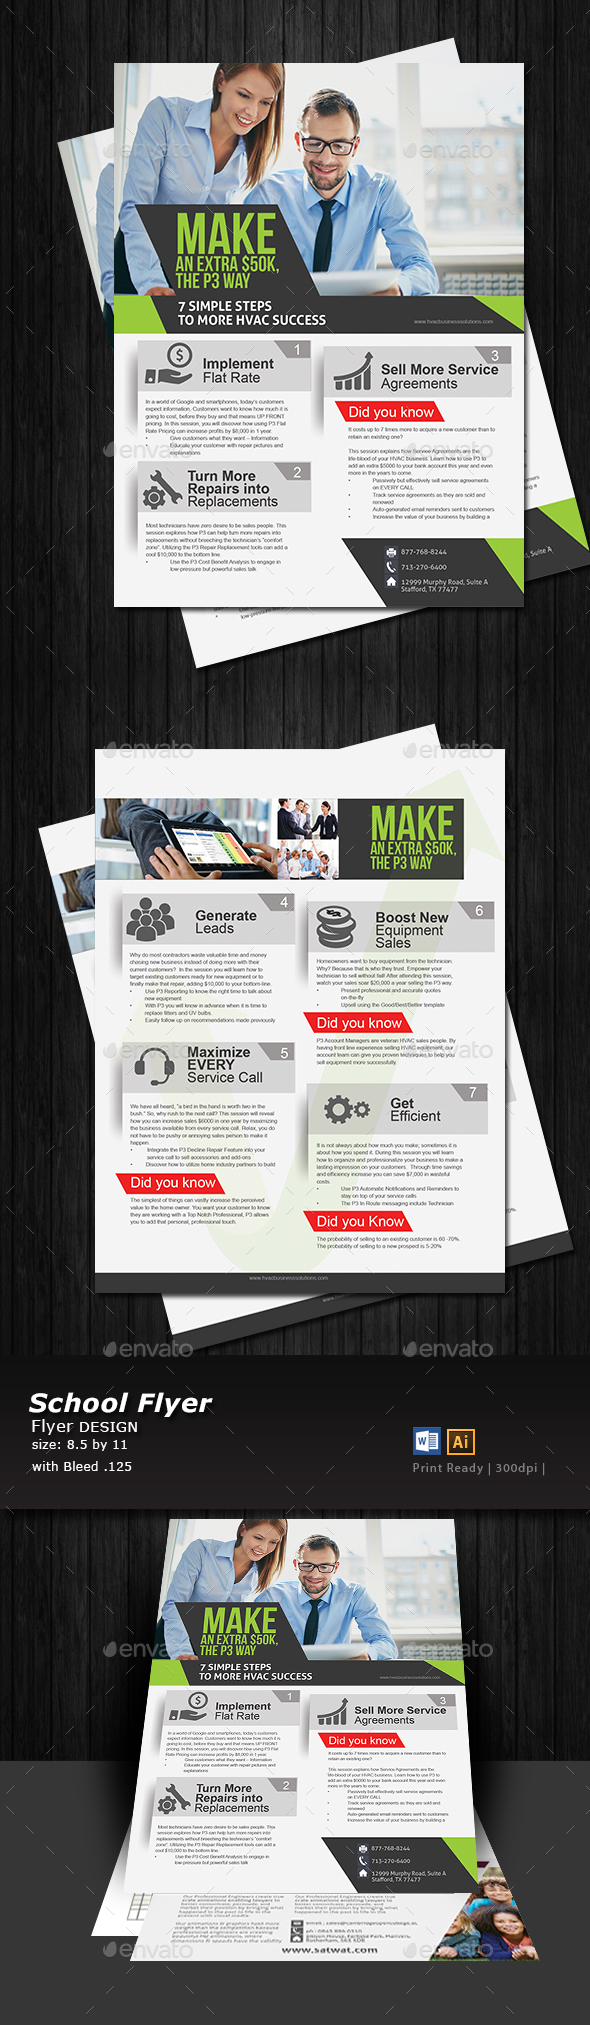 Business Leads Generator Flyer  - Corporate Flyers